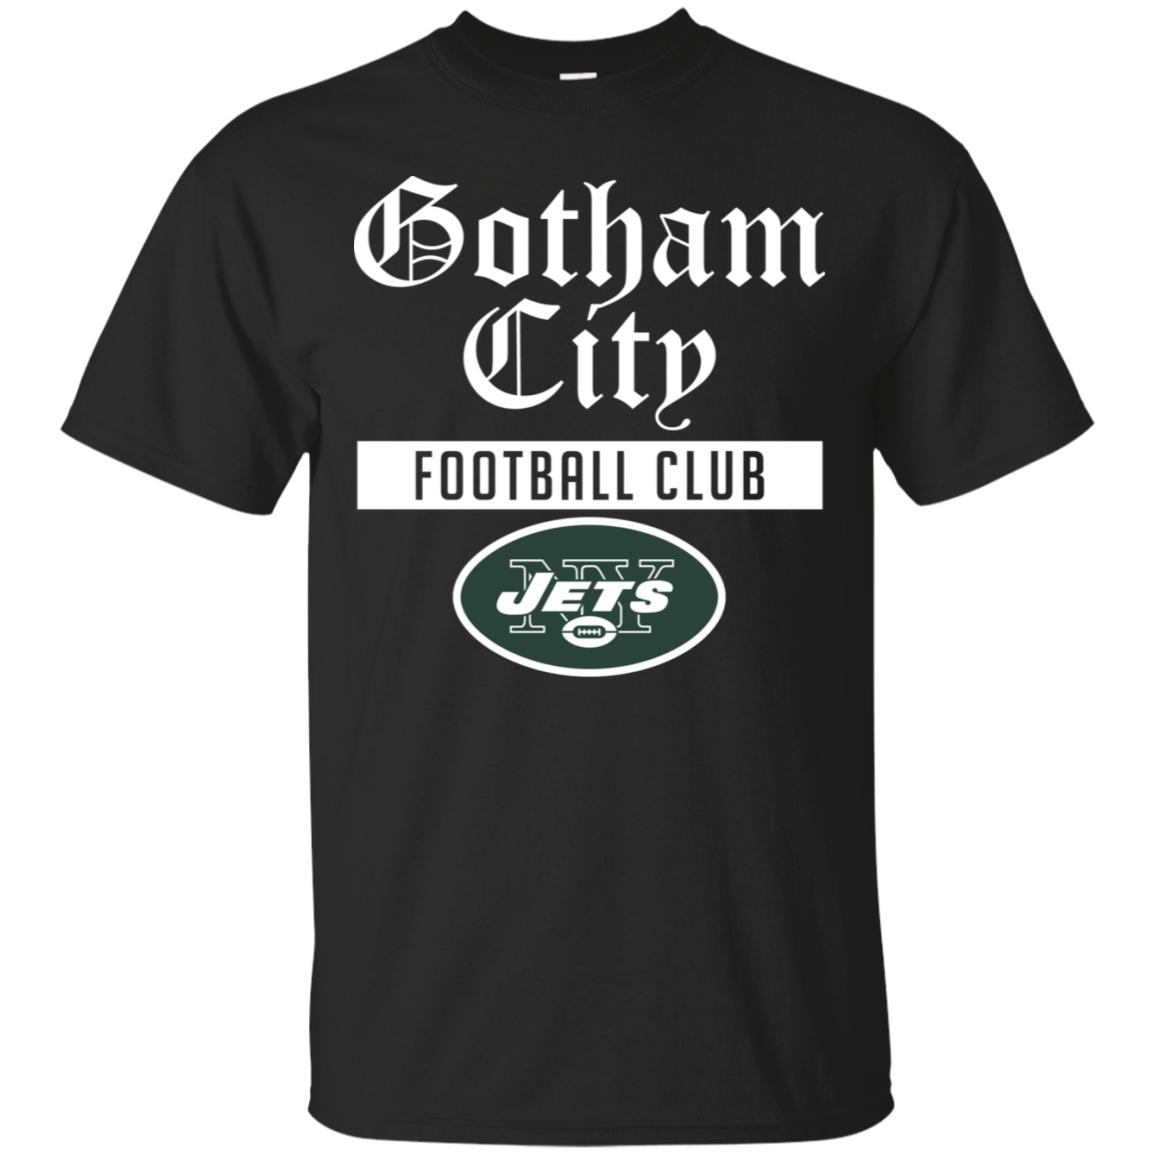 New York Jets Gotham City Football Club T-Shirt